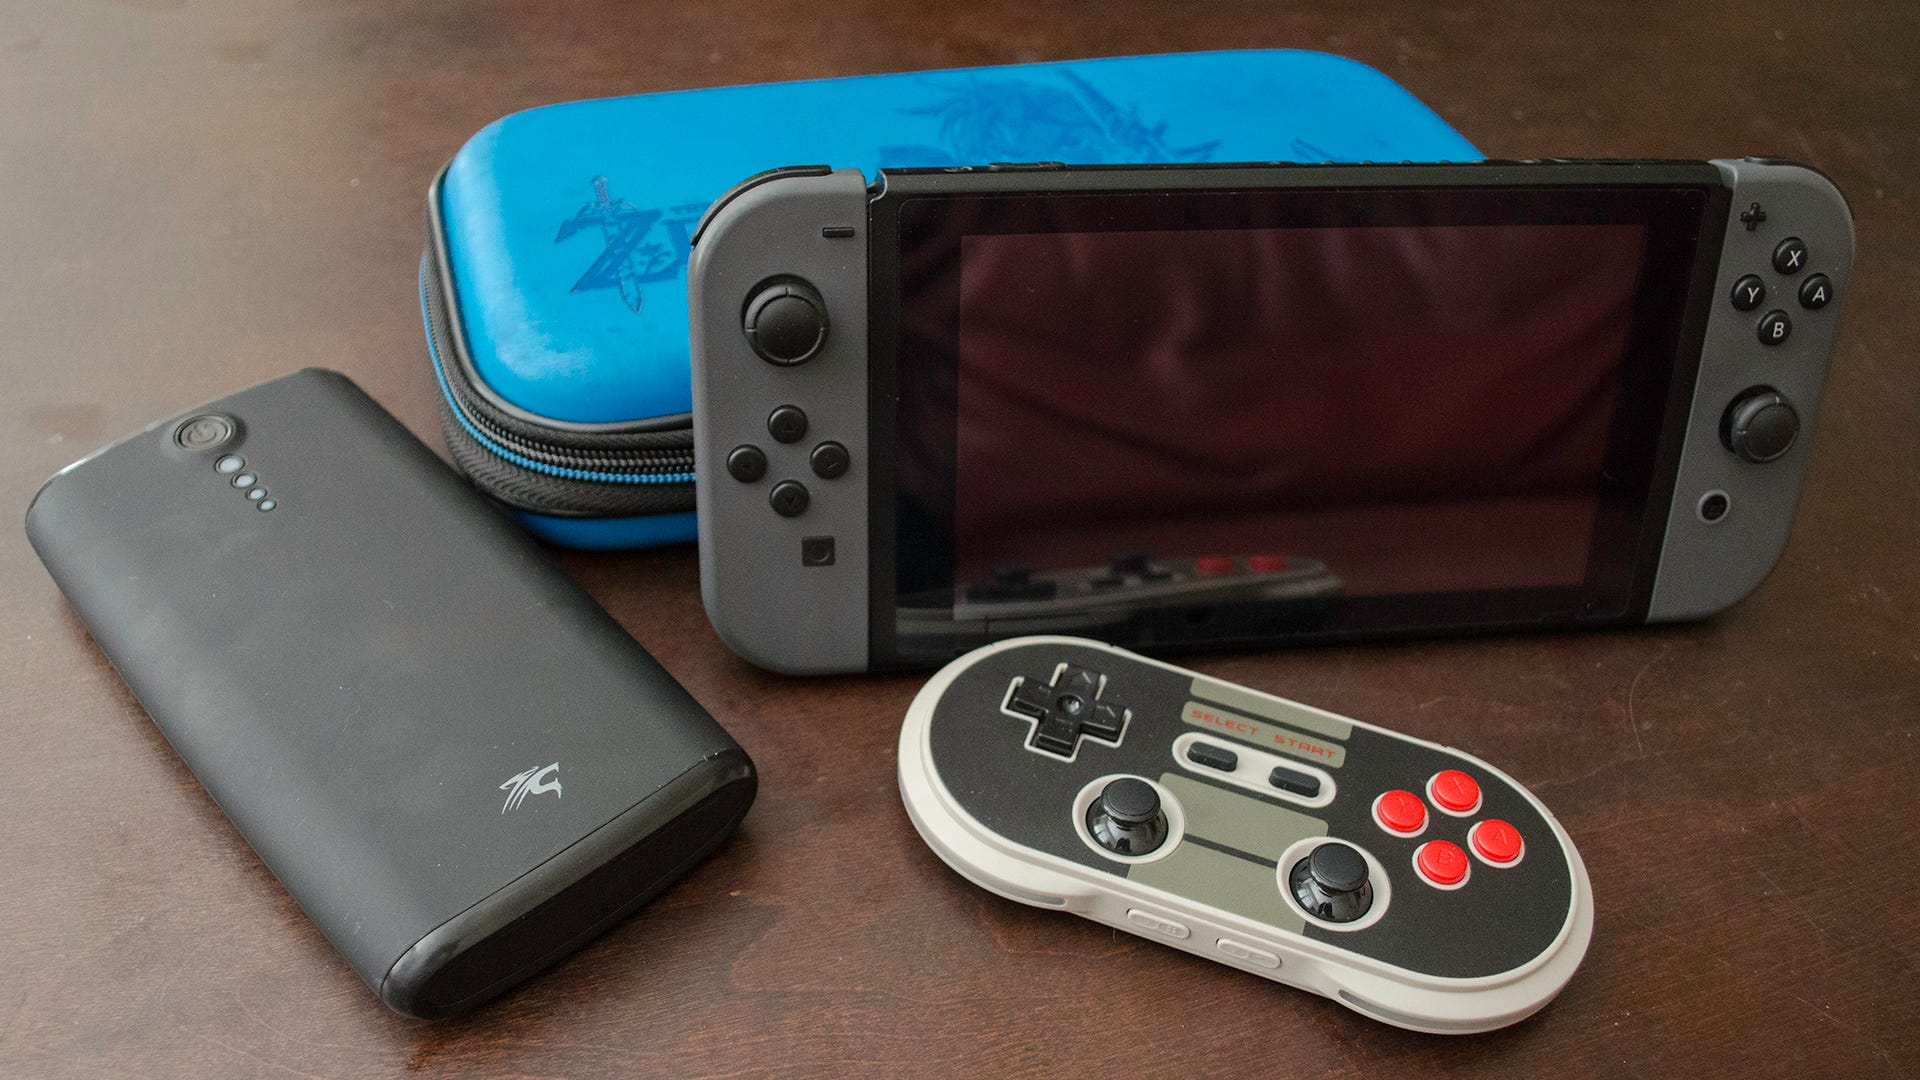 The Nintendo Switch Accessories Youll Actually Need Review Geek Carrying Case Screen Protector Official Is Set To Be One Of Hottest Gaming Items This Holiday Season You Know If Can Find It Once Get Your Hands On Console